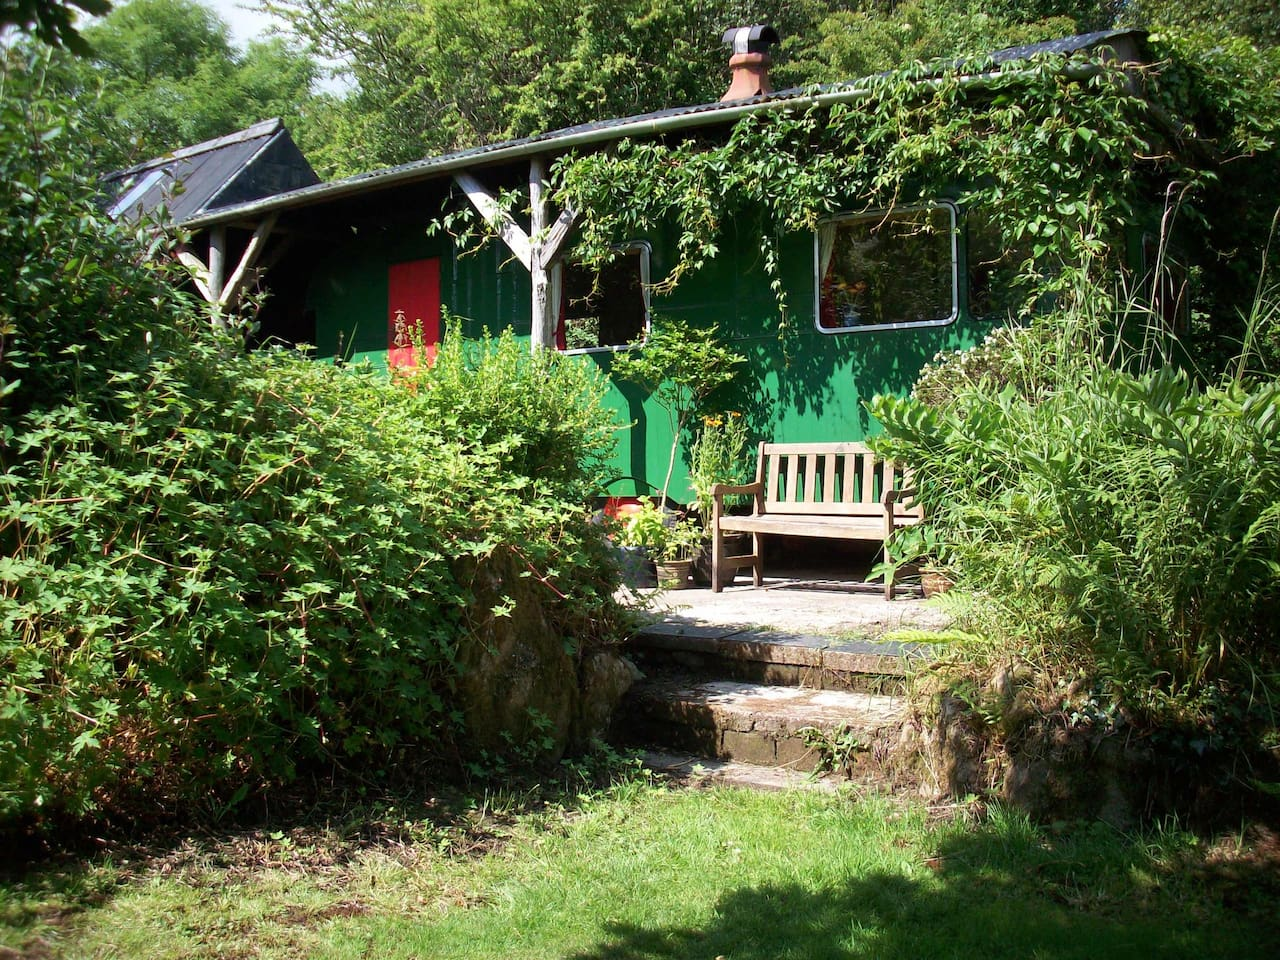 The beautiful vintage caravan at Banc-yr-Eithin complete with private bathroom and own garden, and set within 3 acres of gardens and woodland.